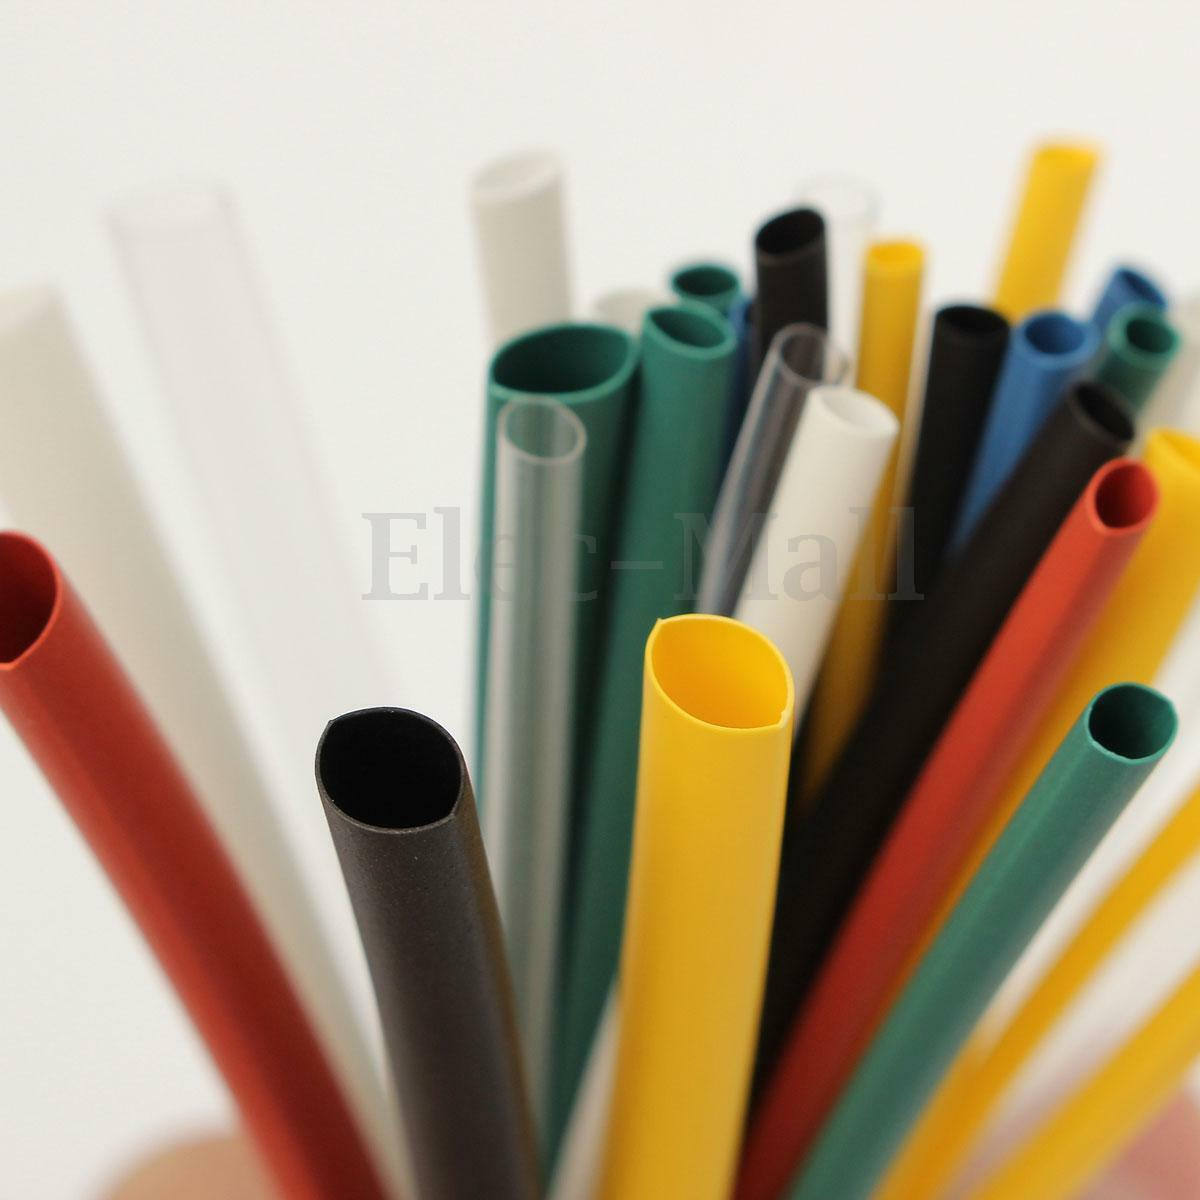 140pcs Assortment Polyolefin 21 Heat Shrink Tubing Sleeving Wrap Sleeve Wiring Harness Wire Cable Kit